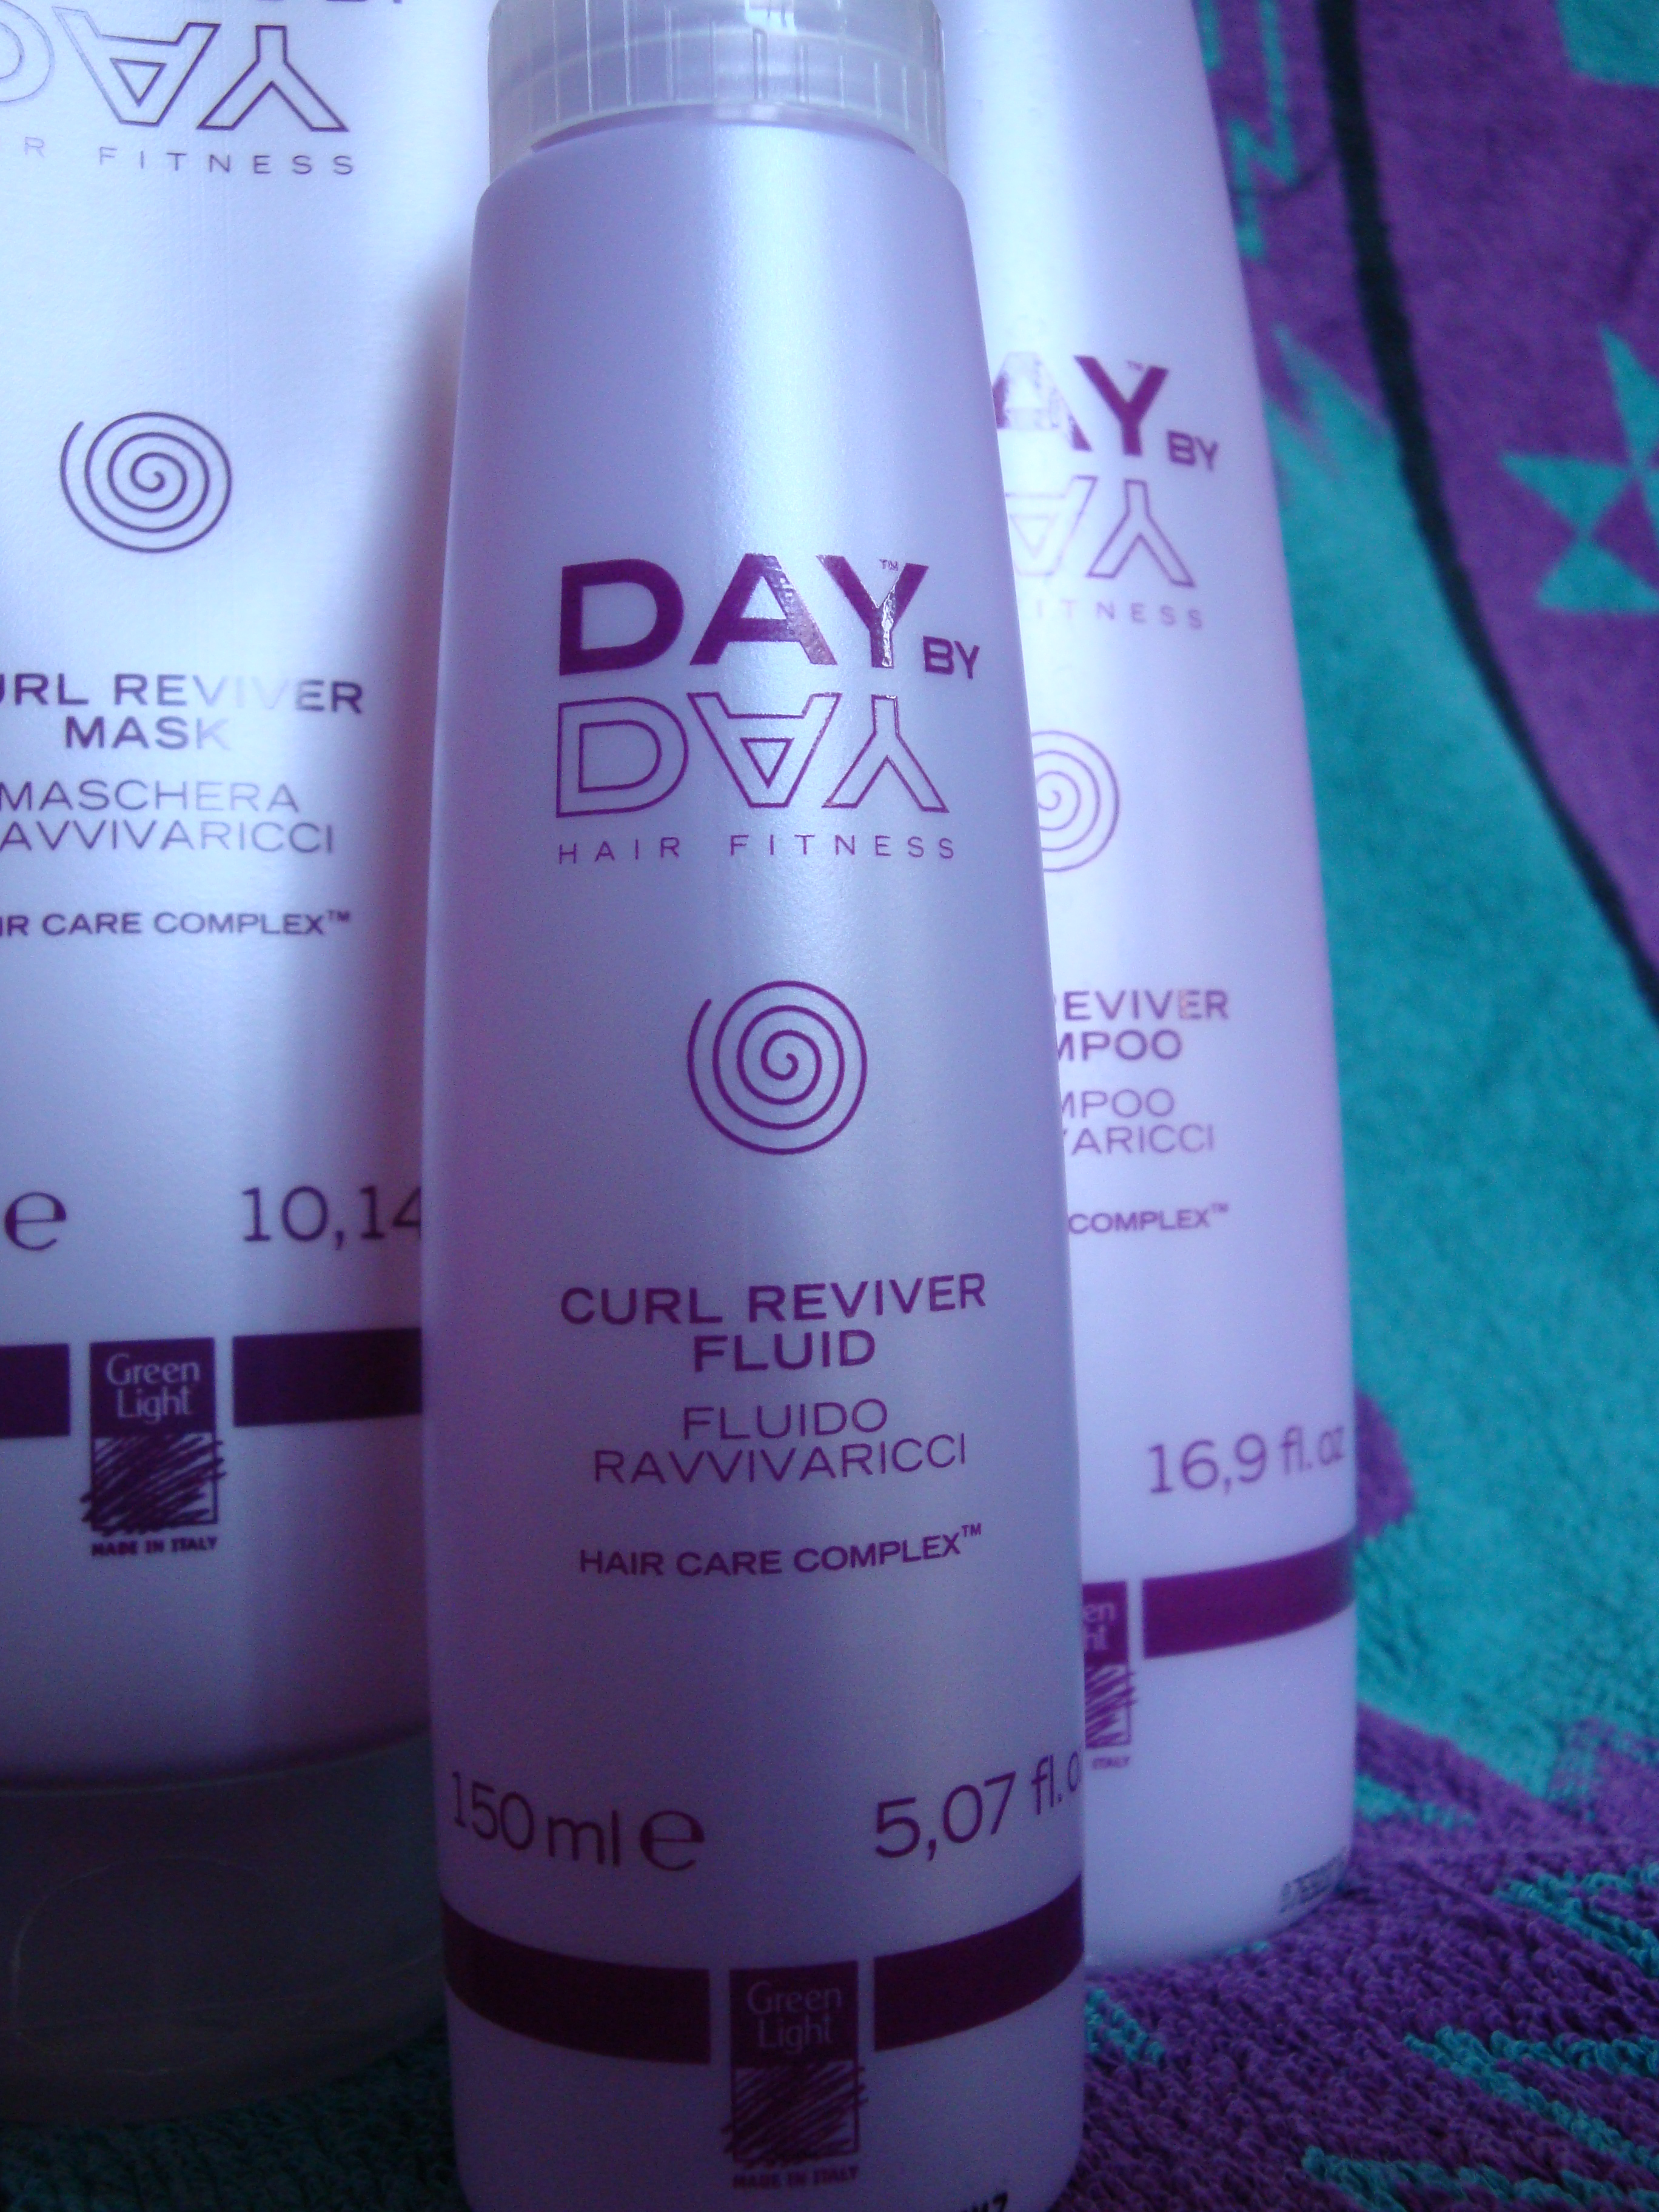 Day by Day curl reviver fluid